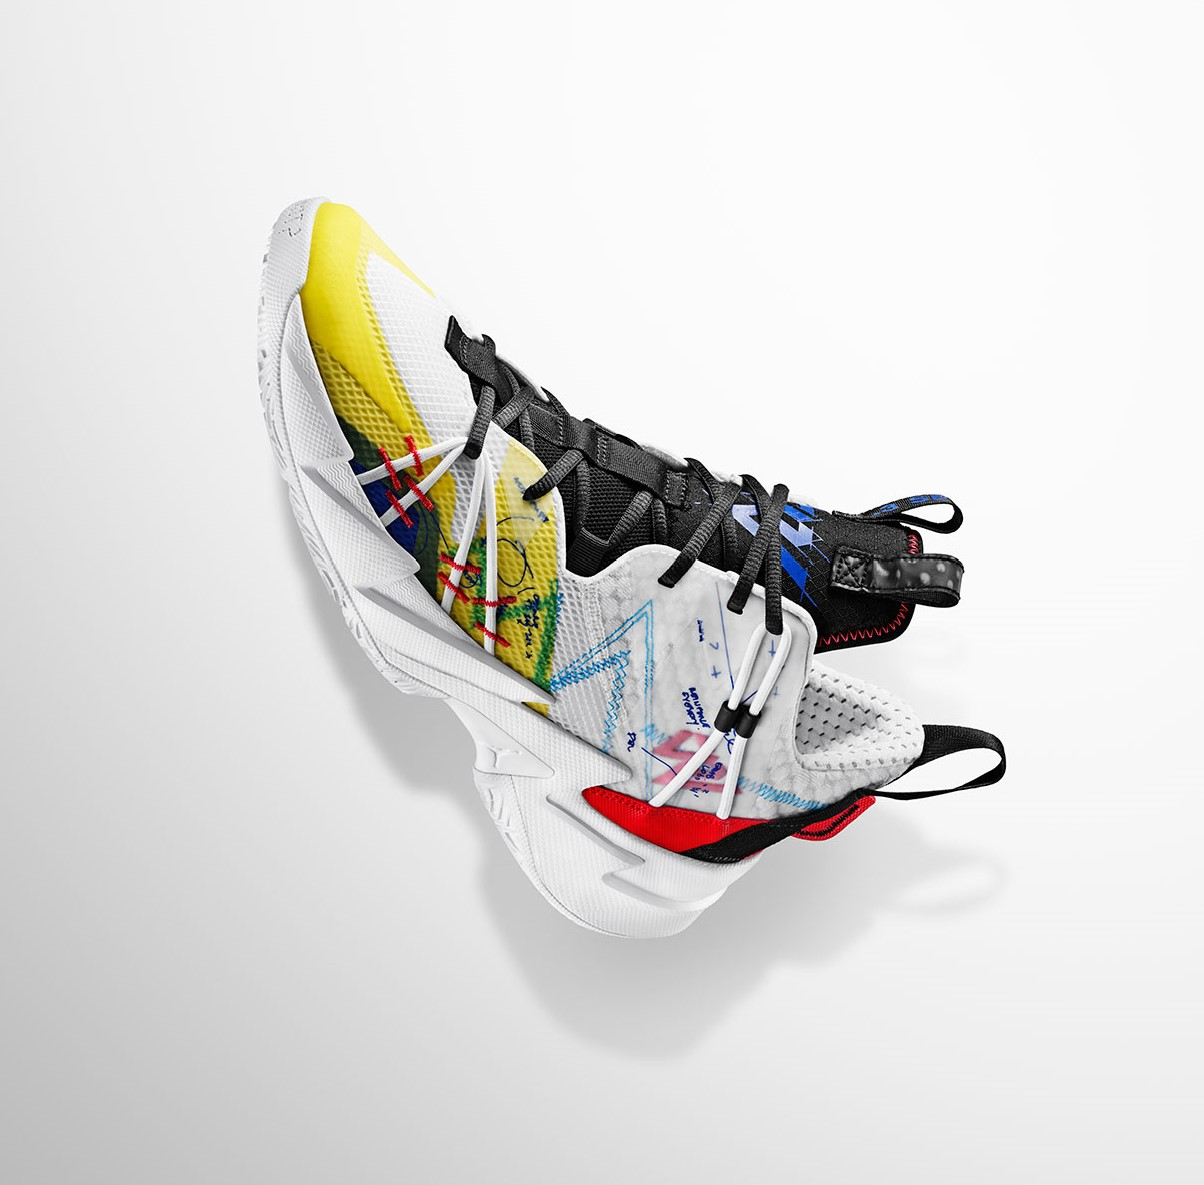 Jordan Why Not? Zer0.3 SE Primary Colors [2]